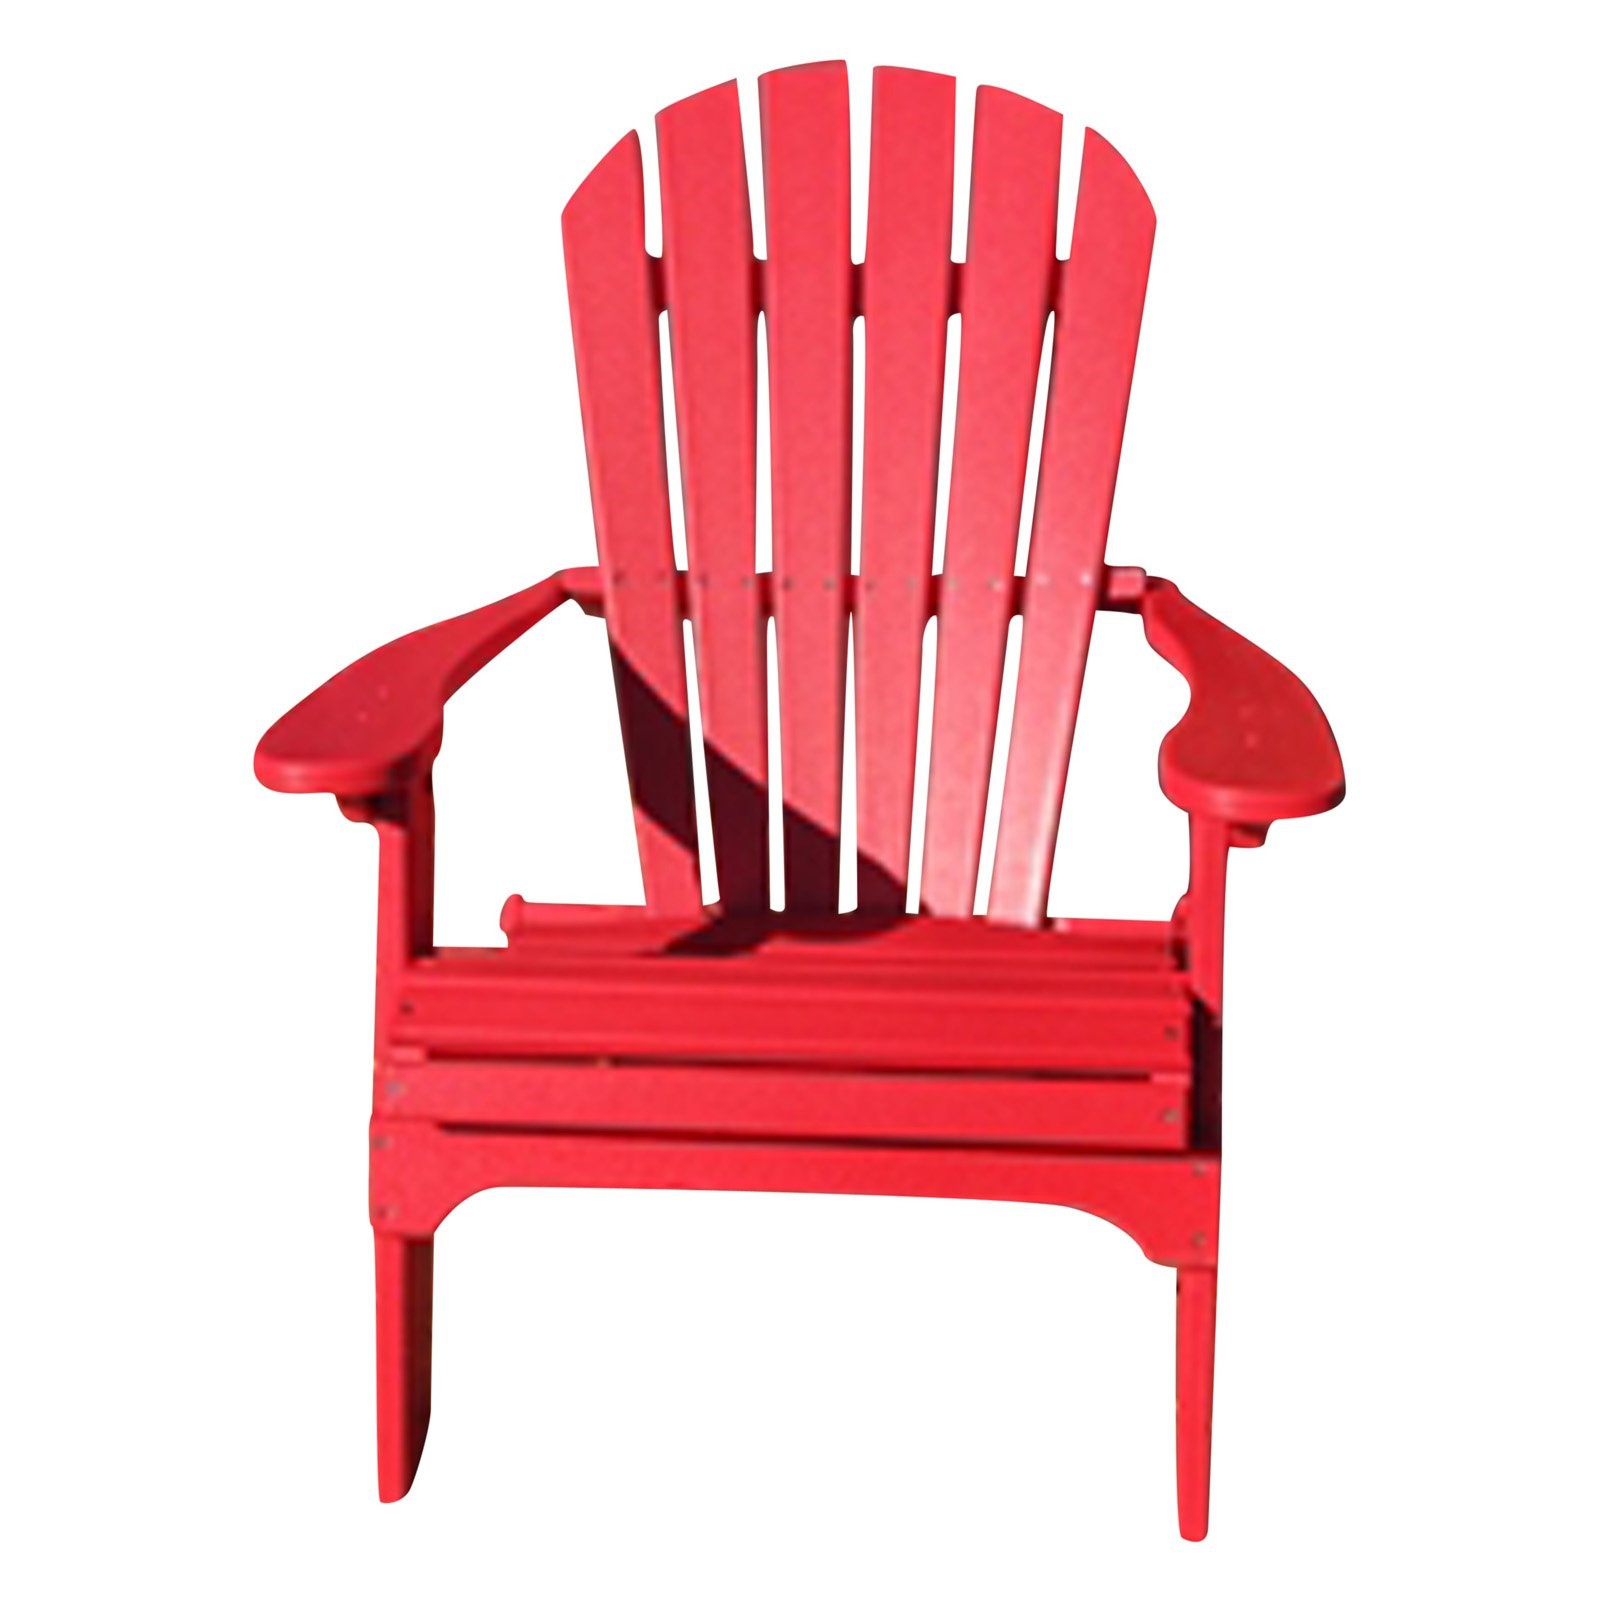 phat tommy recycled poly resin folding adirondack chair durable and eco friendly armchair this patio furniture is great for your lawn garden